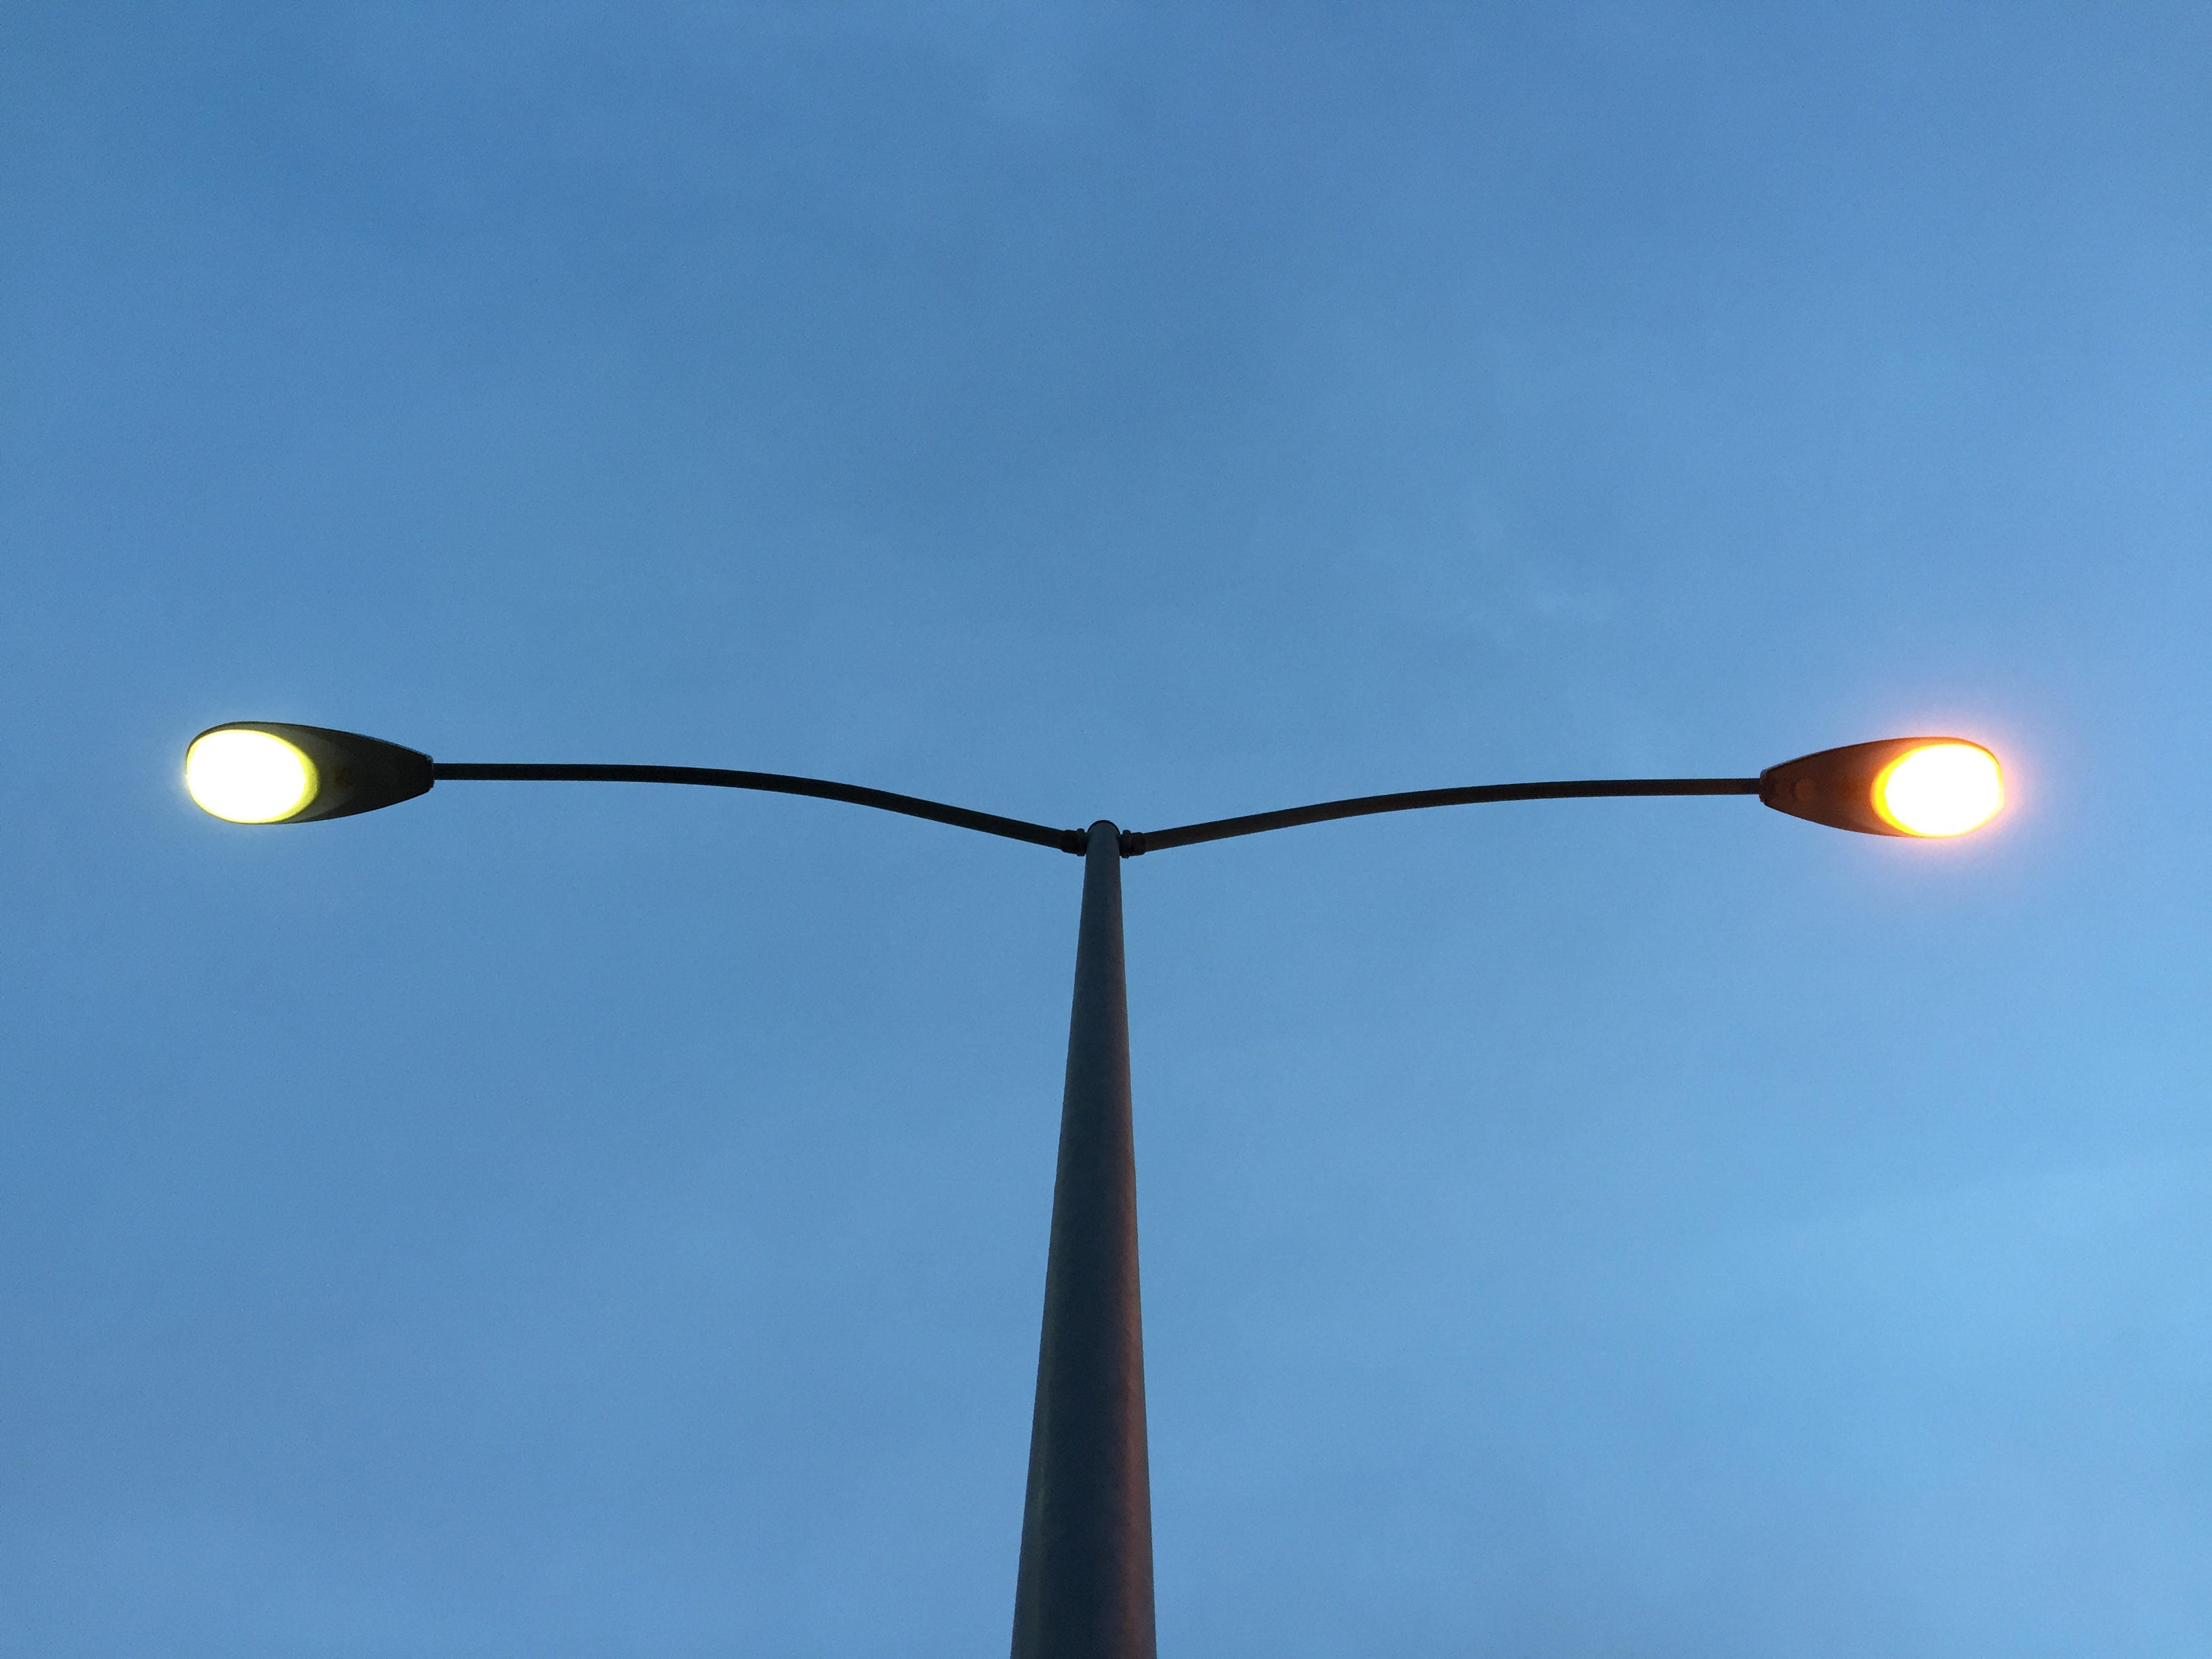 File:2015 02 14 06 38 26 Street Light Post With Both Sodium